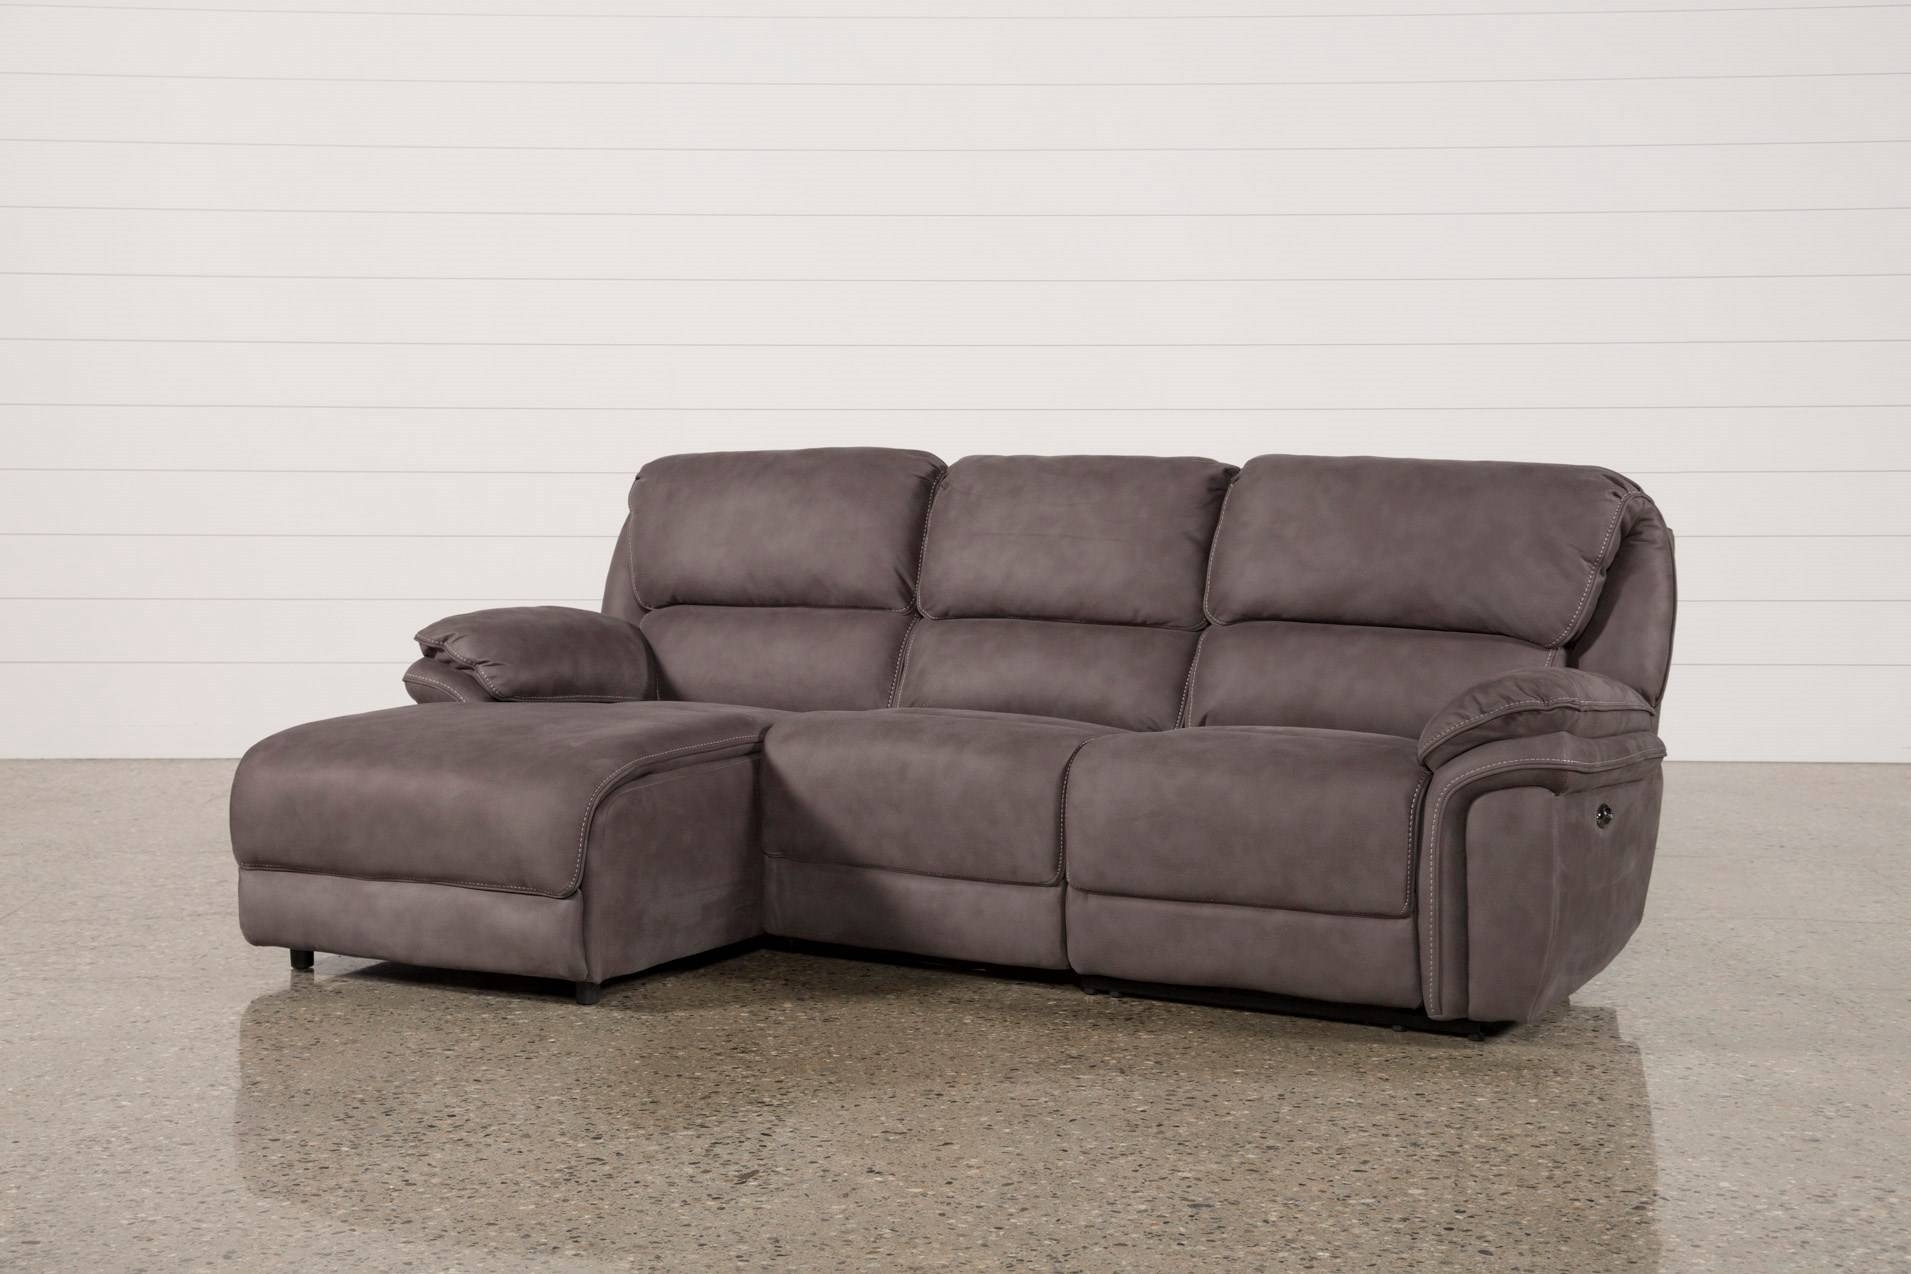 Small Sectional Sofas Living Spaces Couch Locks Norfolk Grey Piece with regard to Avery 2 Piece Sectionals With Laf Armless Chaise (Image 30 of 30)